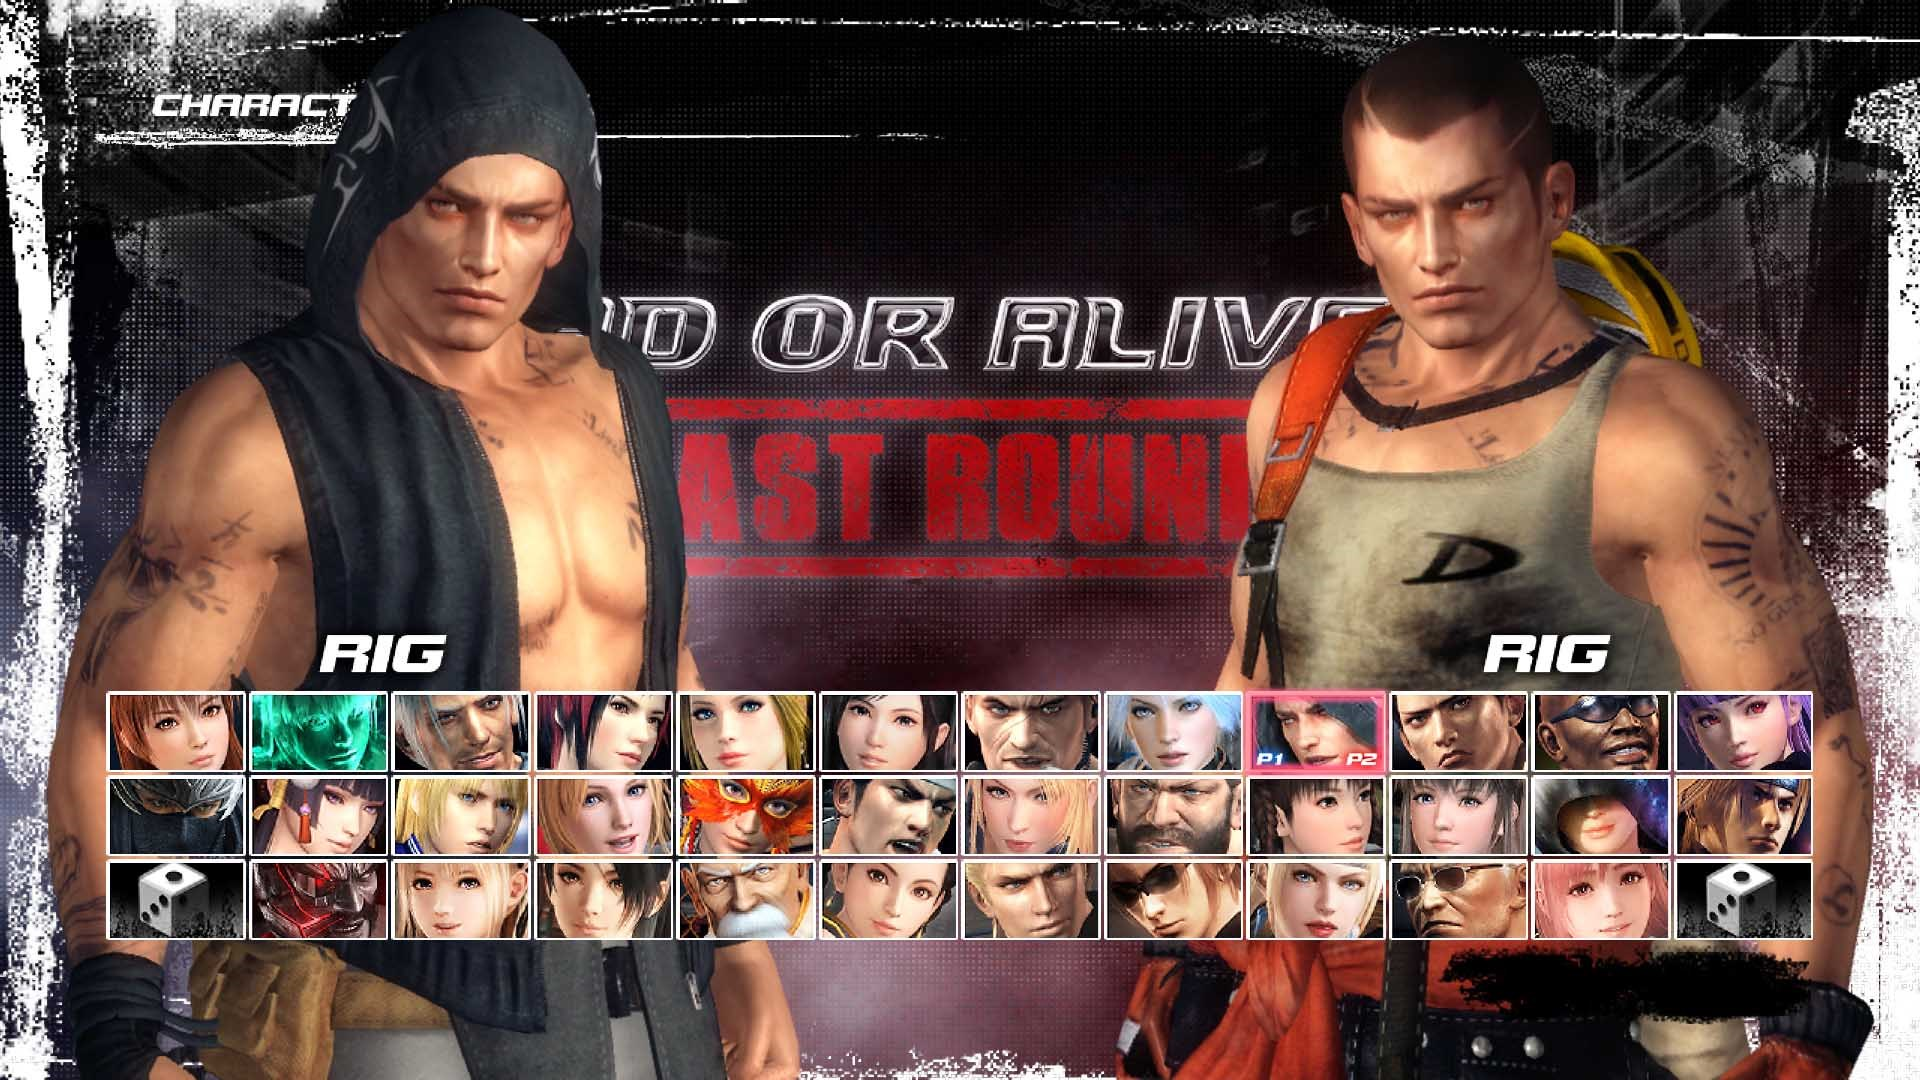 DEAD OR ALIVE 5 Last Round Character: Rig